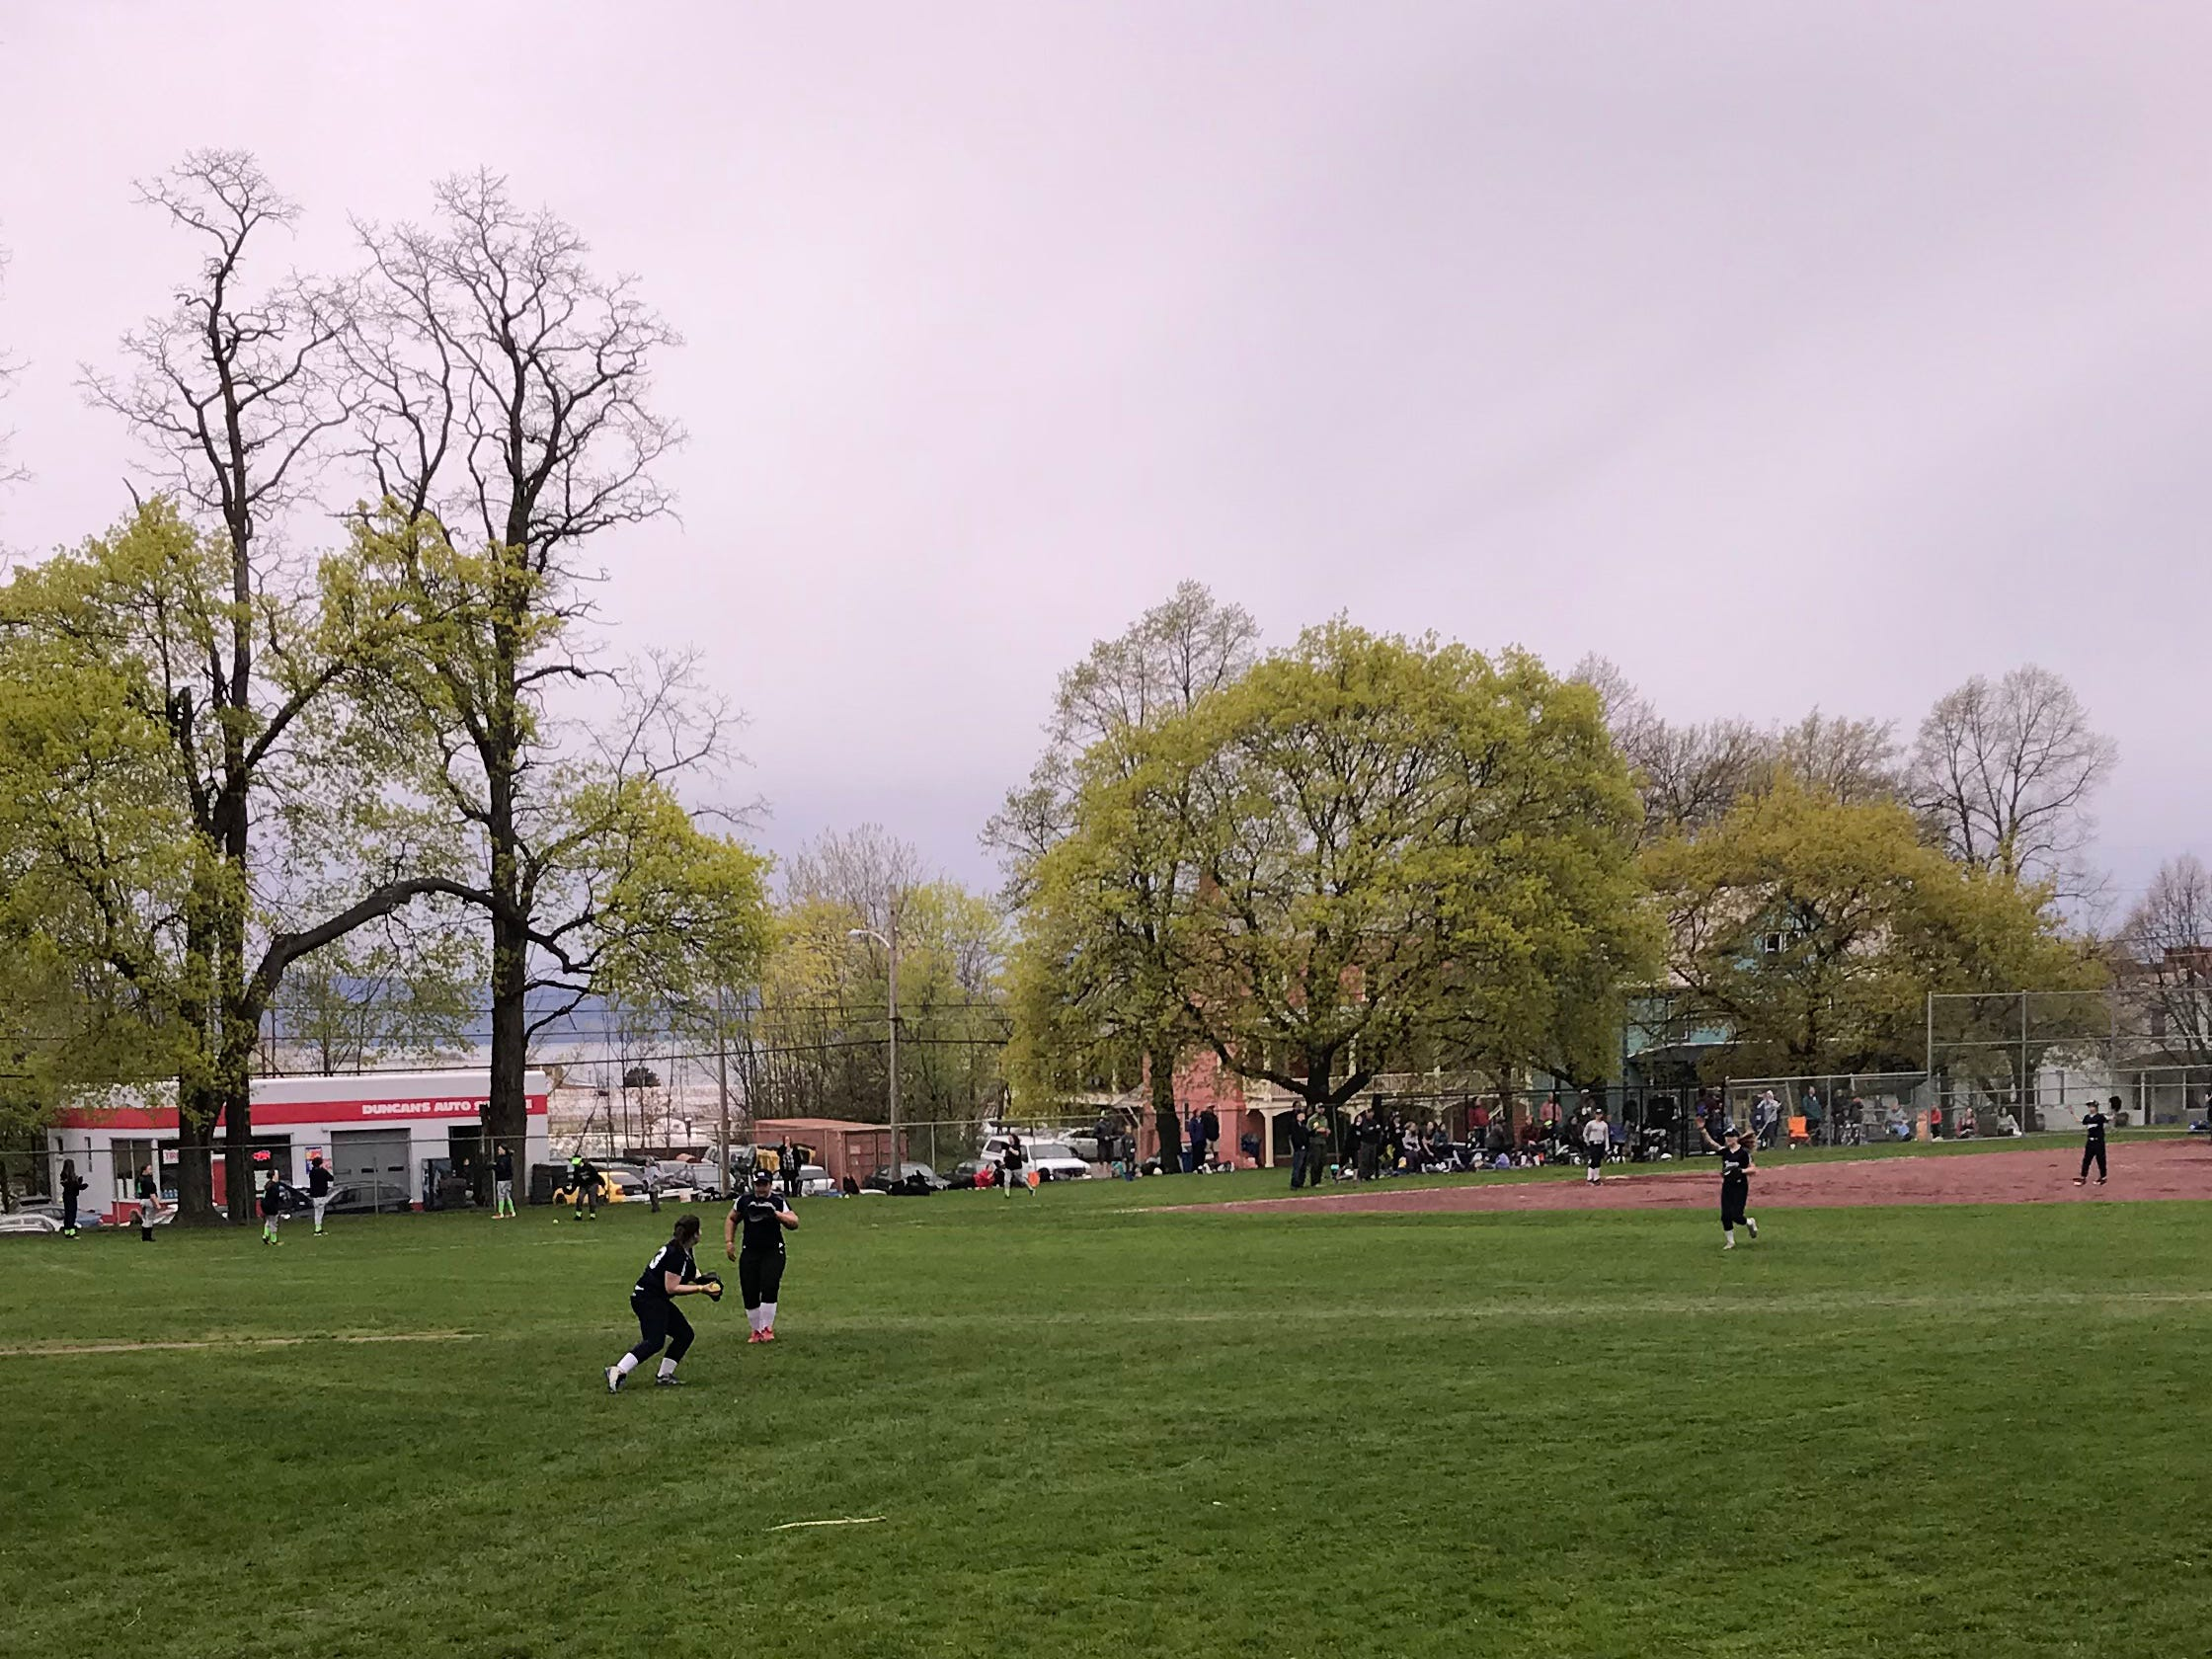 A girls softball game is in full swing in Burlington's Smalley Park on Monday, May 13, 2019.